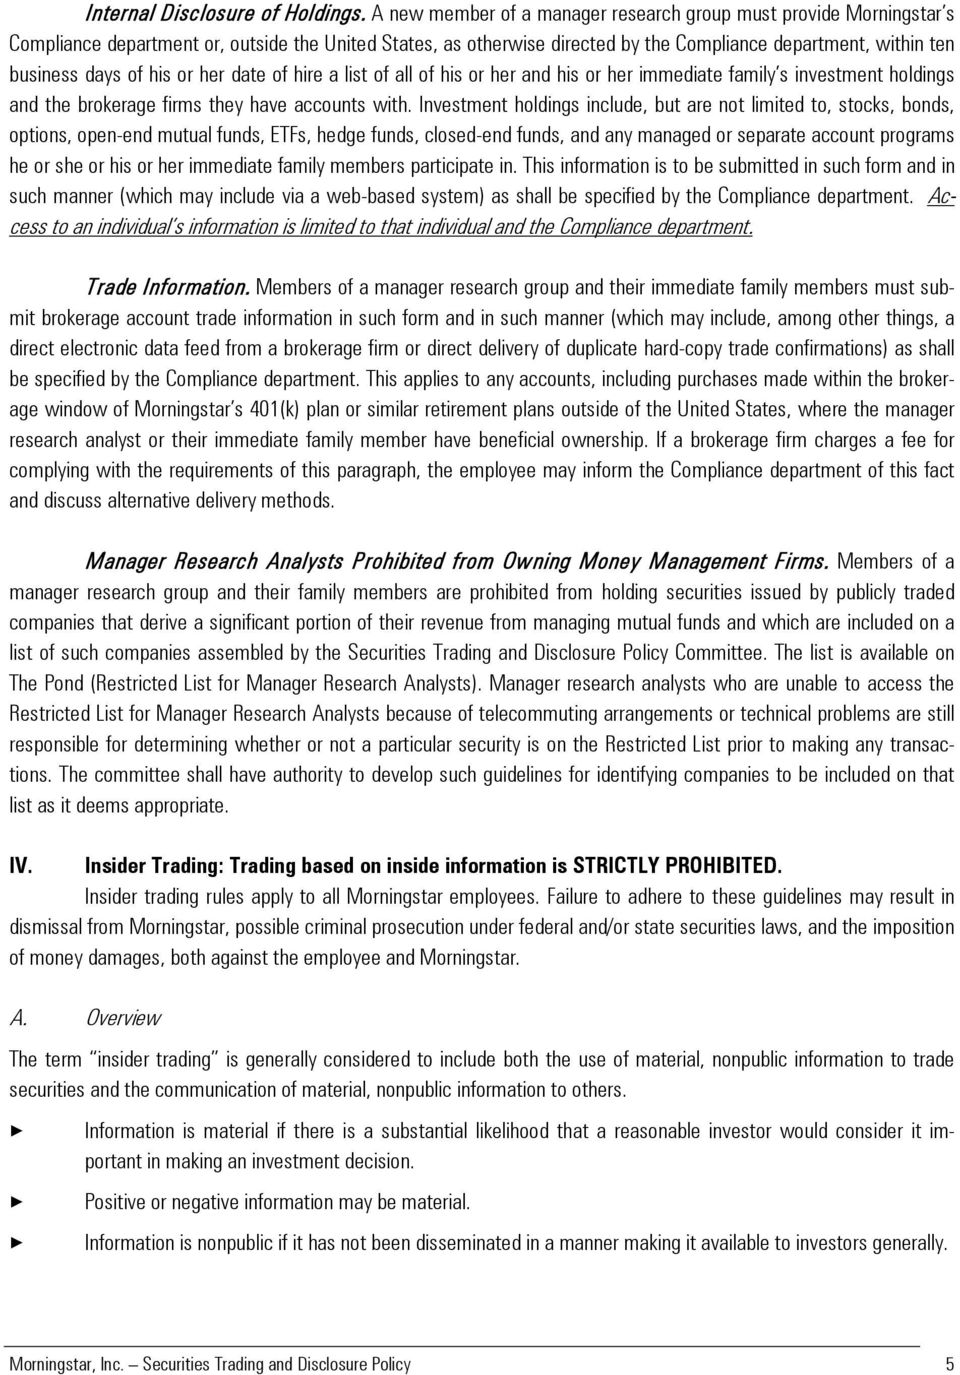 Morningstar, Inc  Securities Trading and Disclosure Policy Amended